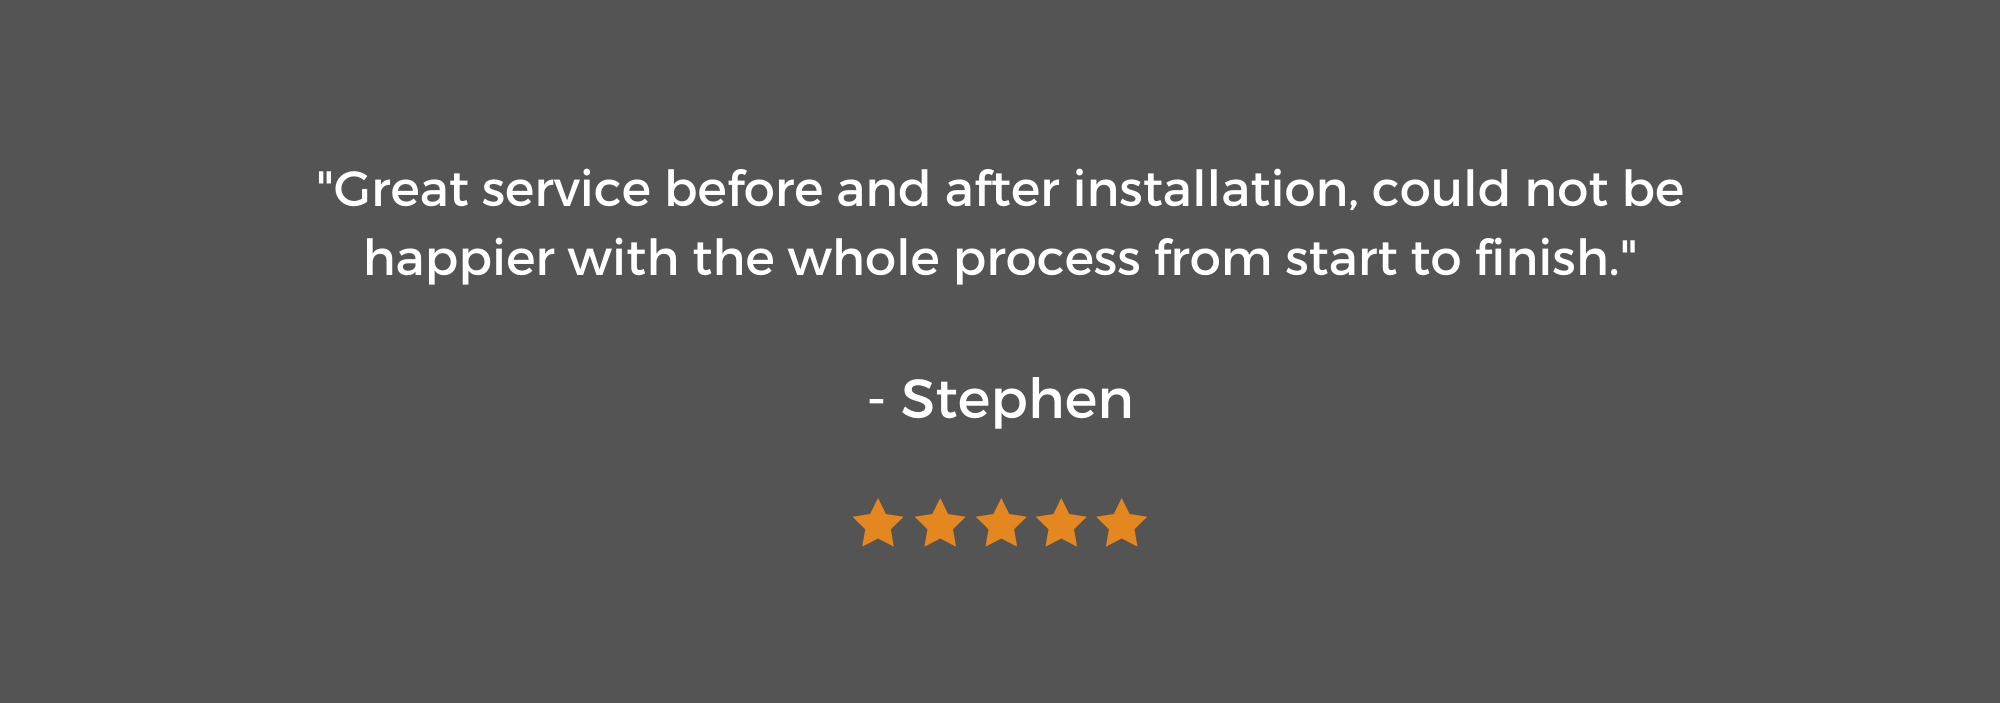 5 Star Review from Stephen